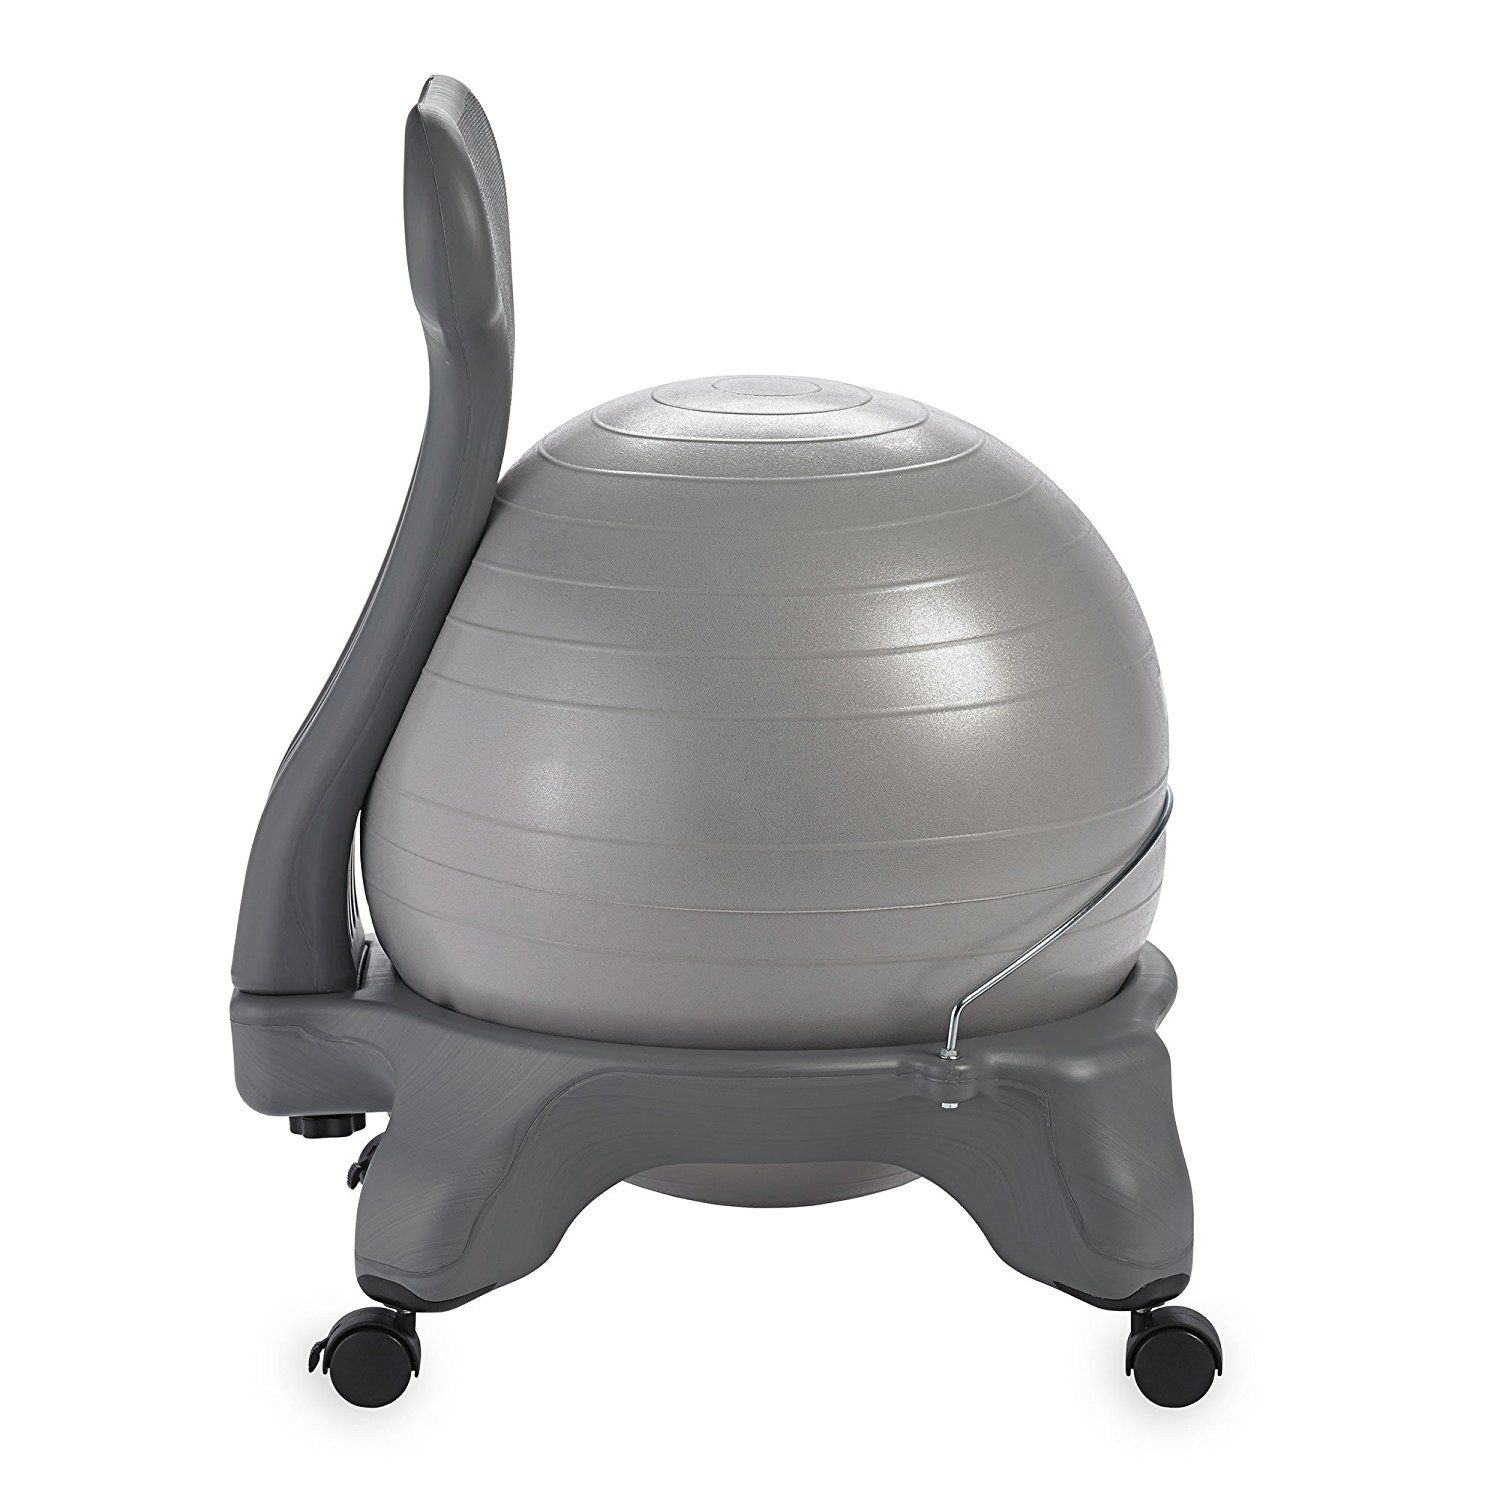 Ball Chair Amazon Canvas Covers Australia Com Gaiam Balance Classic Yoga With 52cm Stability Pump Exercise Guide For Home Or Office Cool Grey Sports